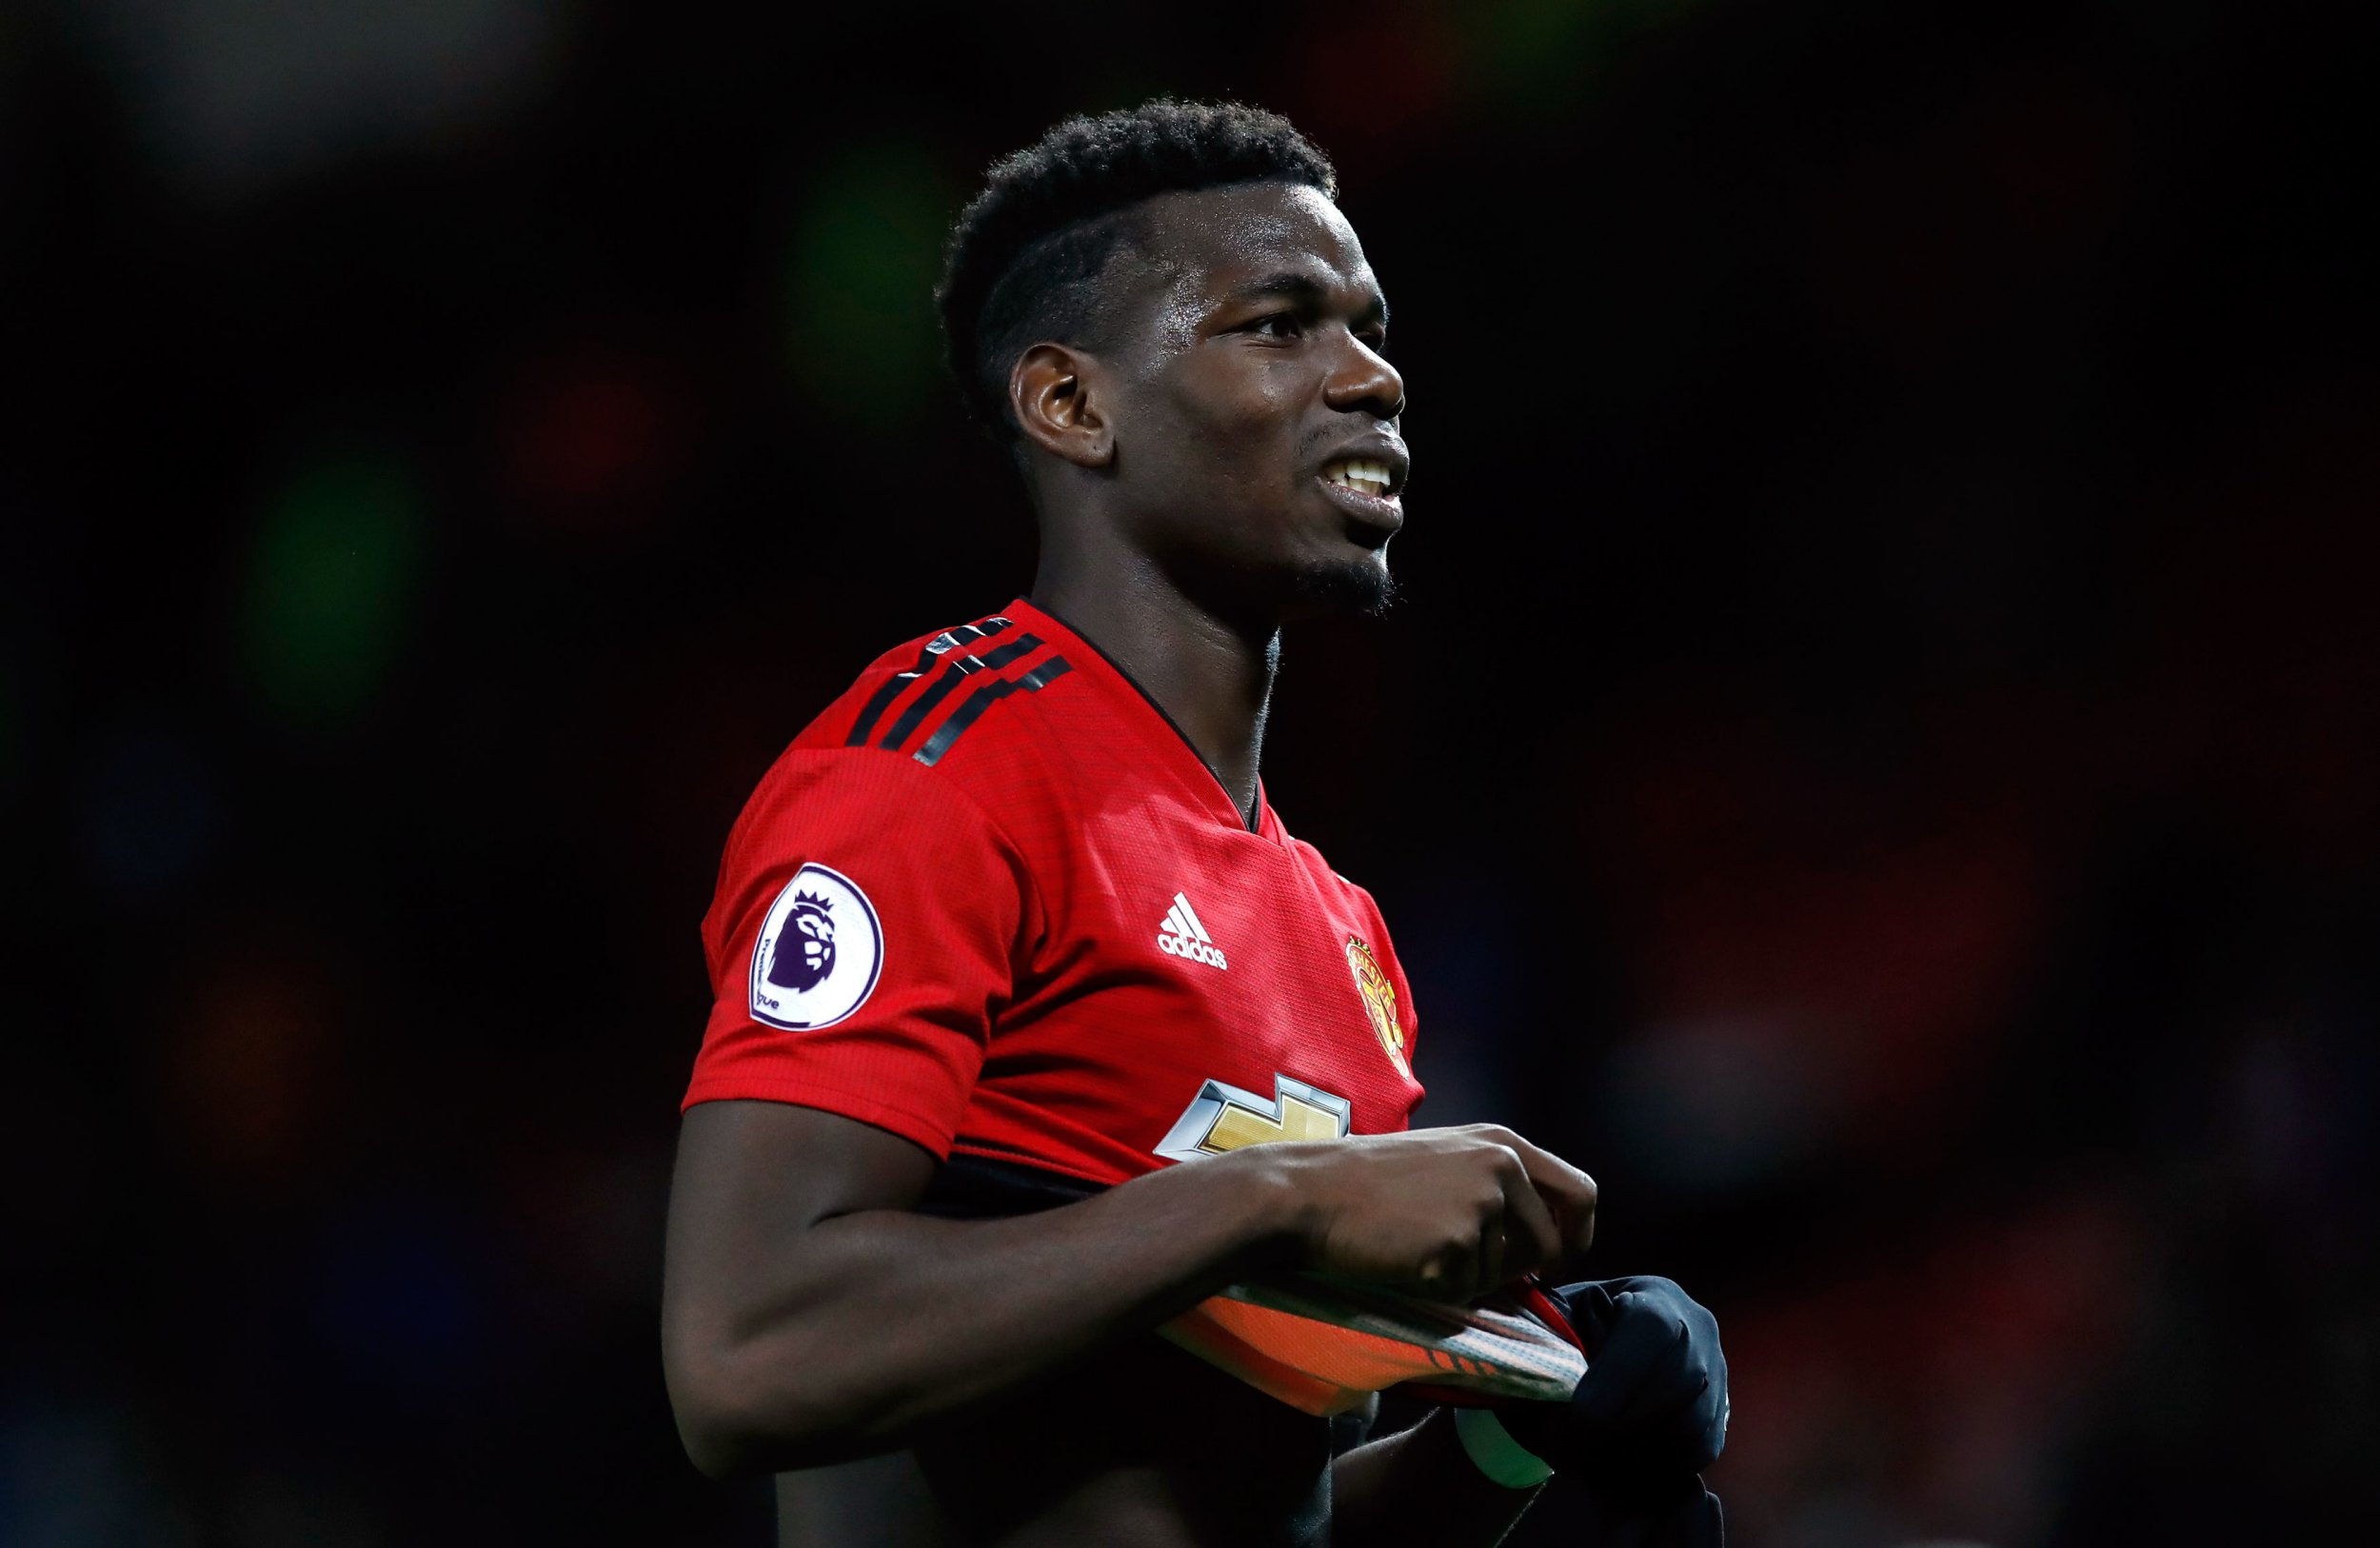 """Manchester United's Paul Pogba after the Premier League match at Old Trafford, Manchester. PRESS ASSOCIATION Photo. Picture date: Sunday October 28, 2018. See PA story SOCCER Man Utd. Photo credit should read: Martin Rickett/PA Wire. RESTRICTIONS: EDITORIAL USE ONLY No use with unauthorised audio, video, data, fixture lists, club/league logos or """"live"""" services. Online in-match use limited to 120 images, no video emulation. No use in betting, games or single club/league/player publications."""